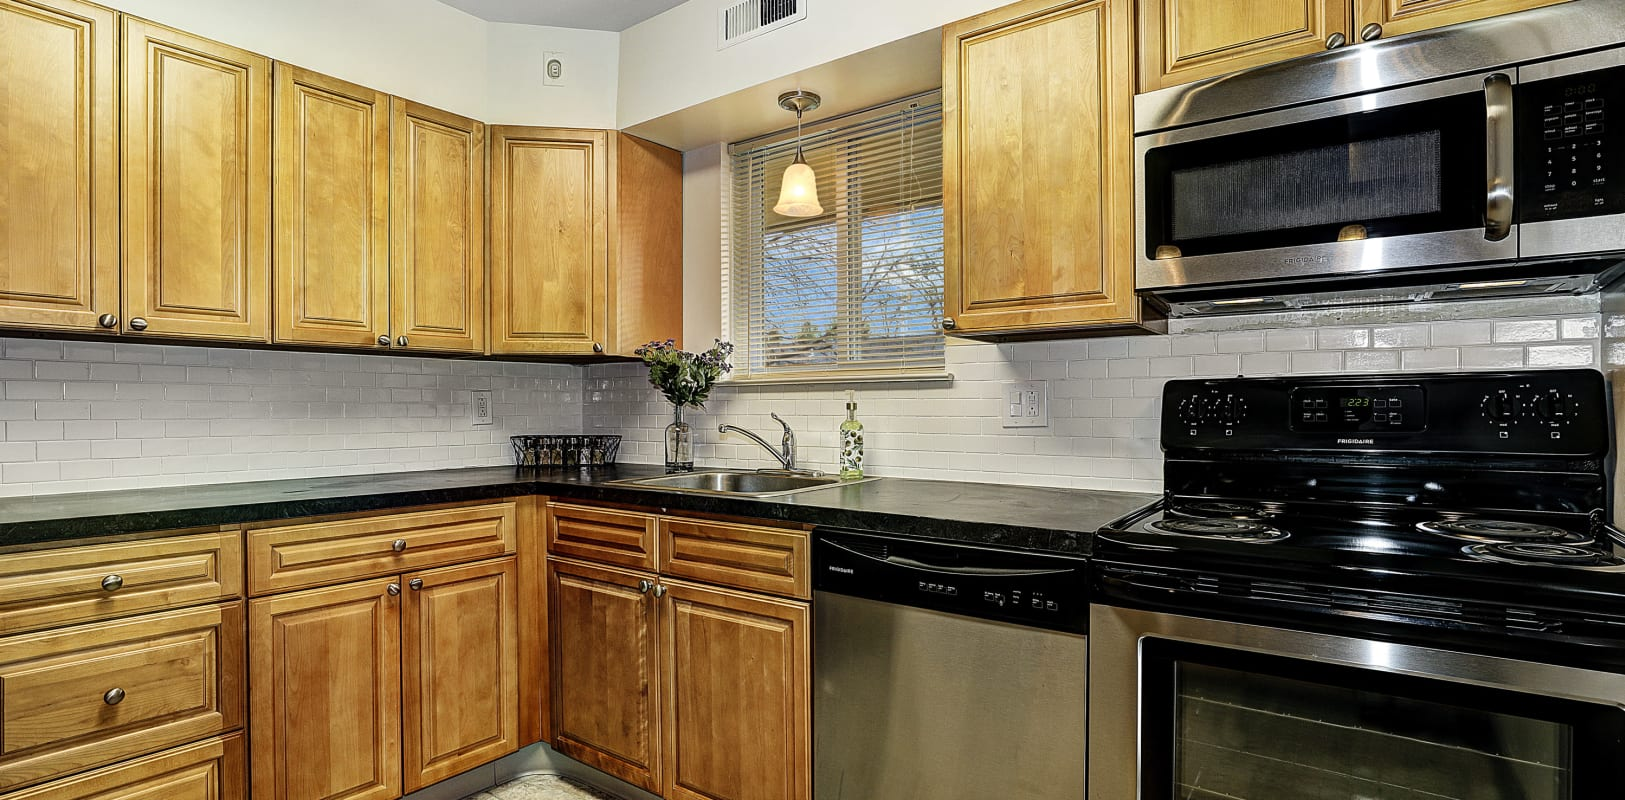 Lots of cabinet space in the kitchen at Penn Crest Apartments in Allentown, Pennsylvania